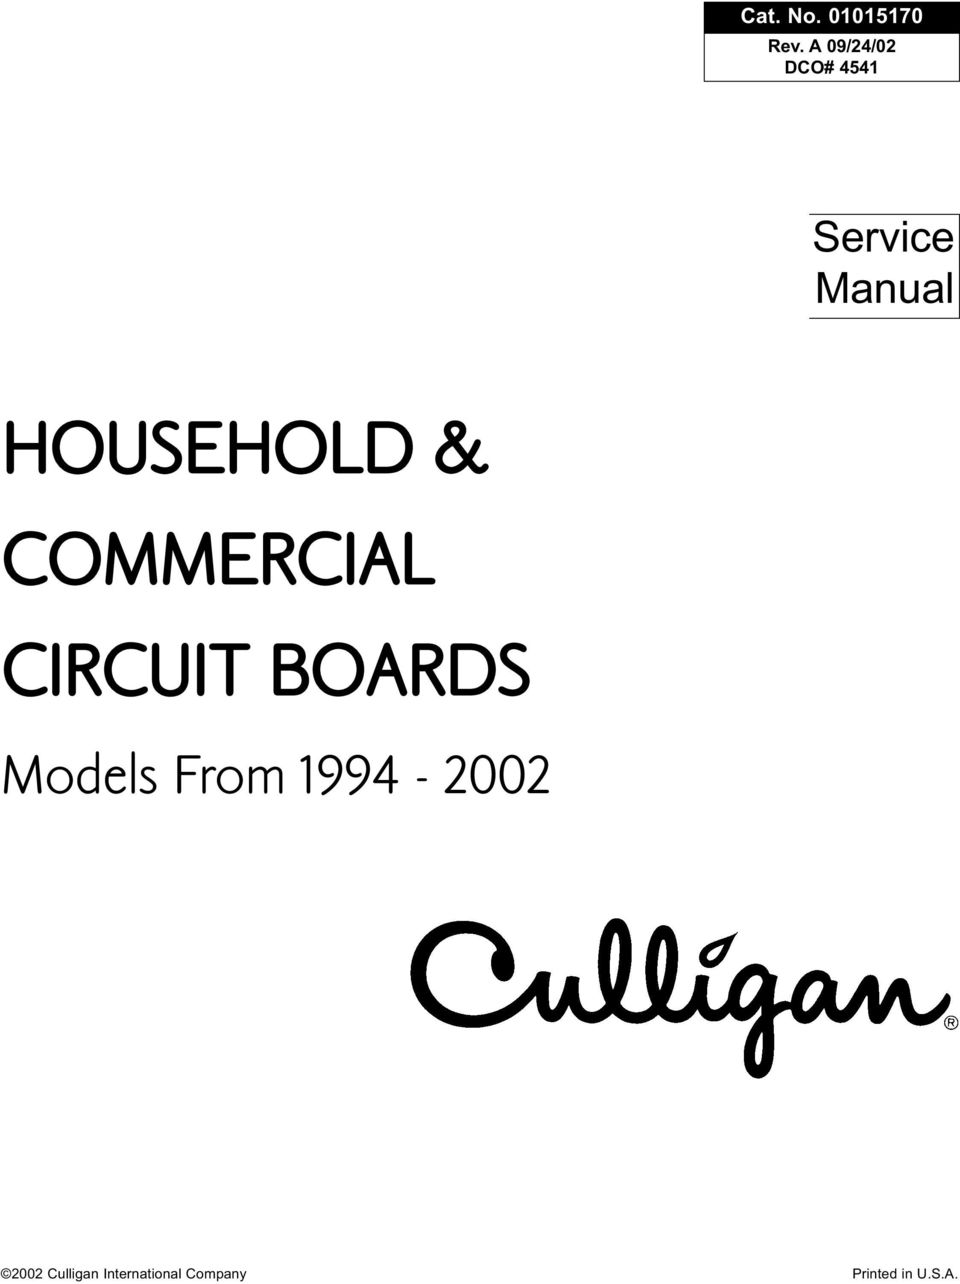 HOUSEHOLD & COMMERCIAL CIRCUIT BOARDS